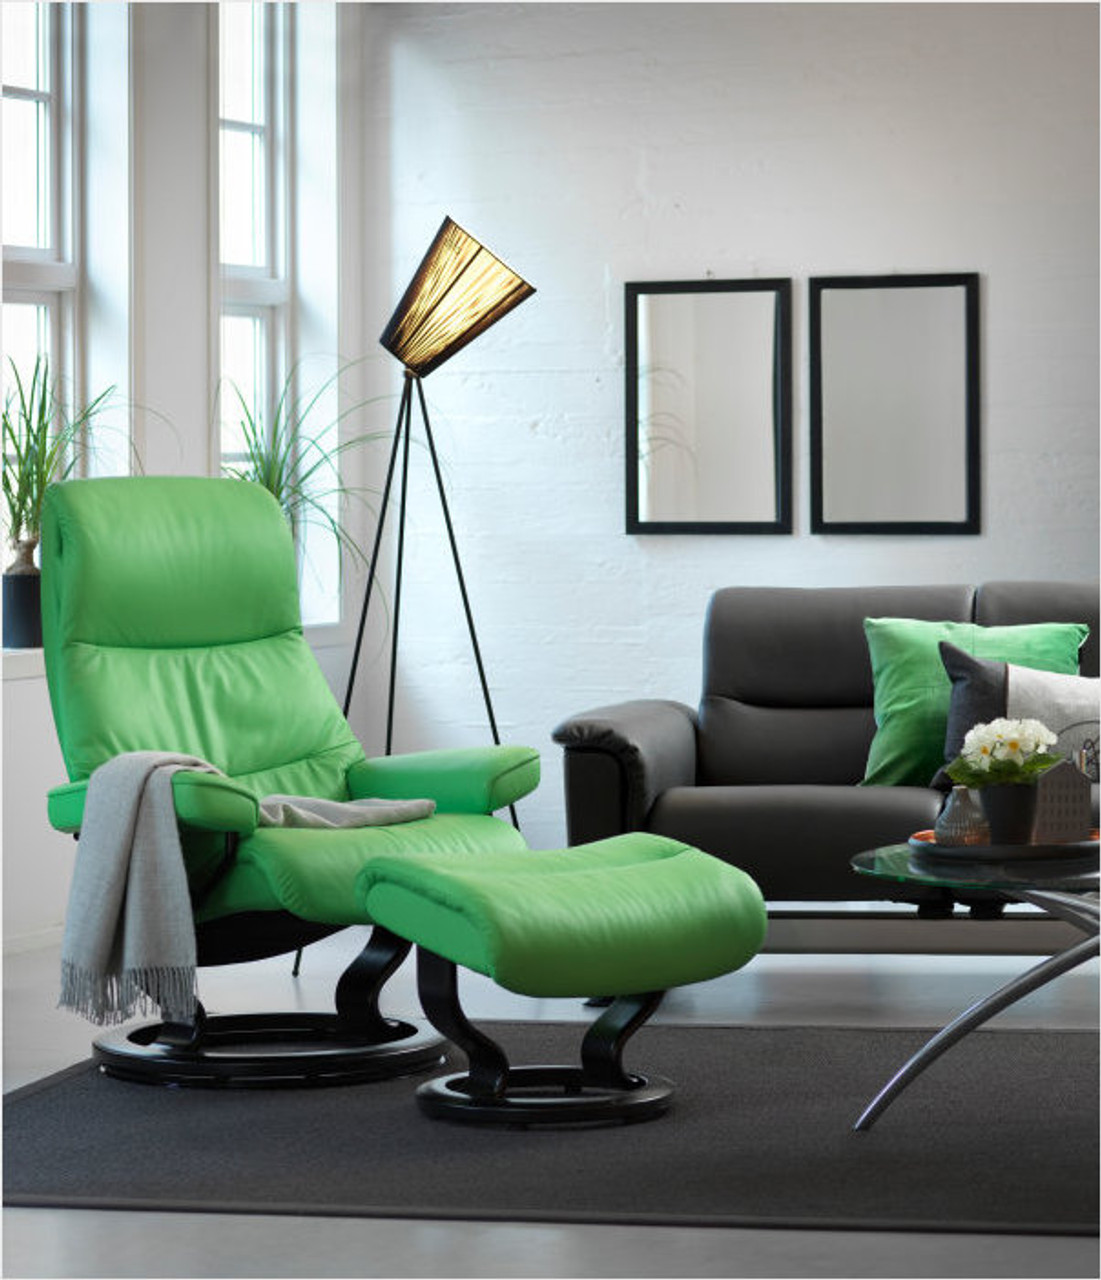 Astounding Stressless View Recliner Medium Classic Base With Ottoman Bralicious Painted Fabric Chair Ideas Braliciousco